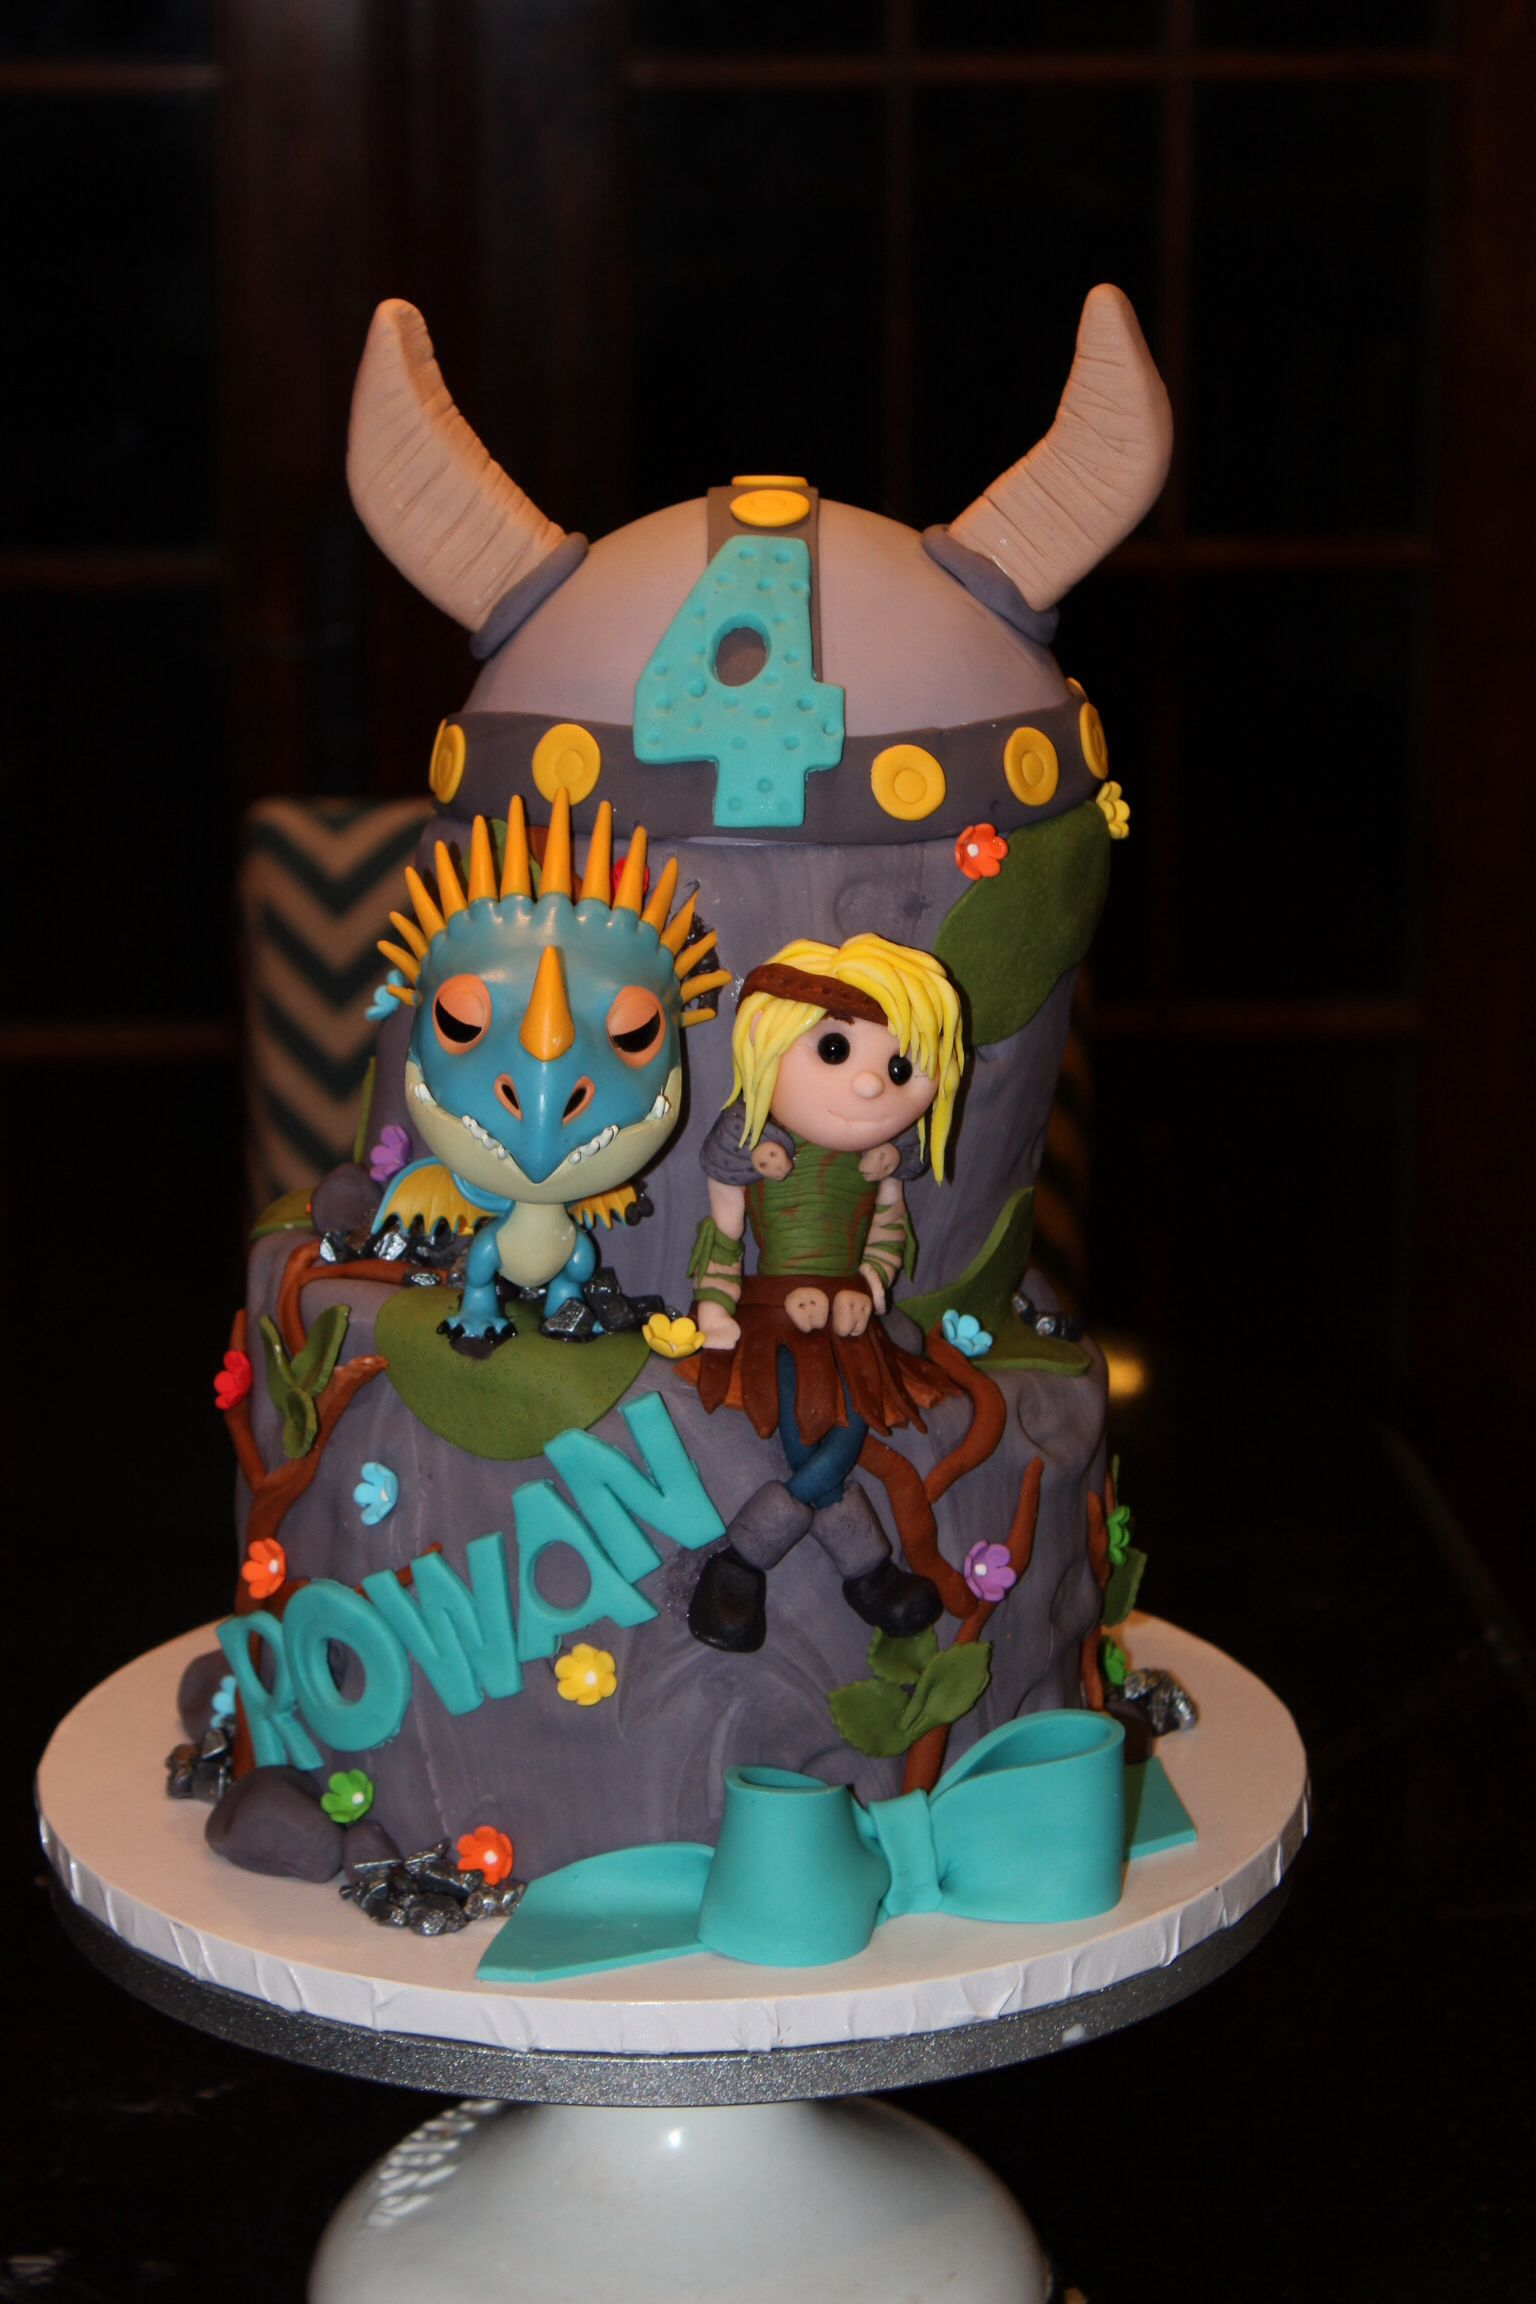 How to train your dragon all fondant except dragon viking hat how to train your dragon all fondant except dragon viking hat birthday cake designed by nettiecakes ccuart Choice Image